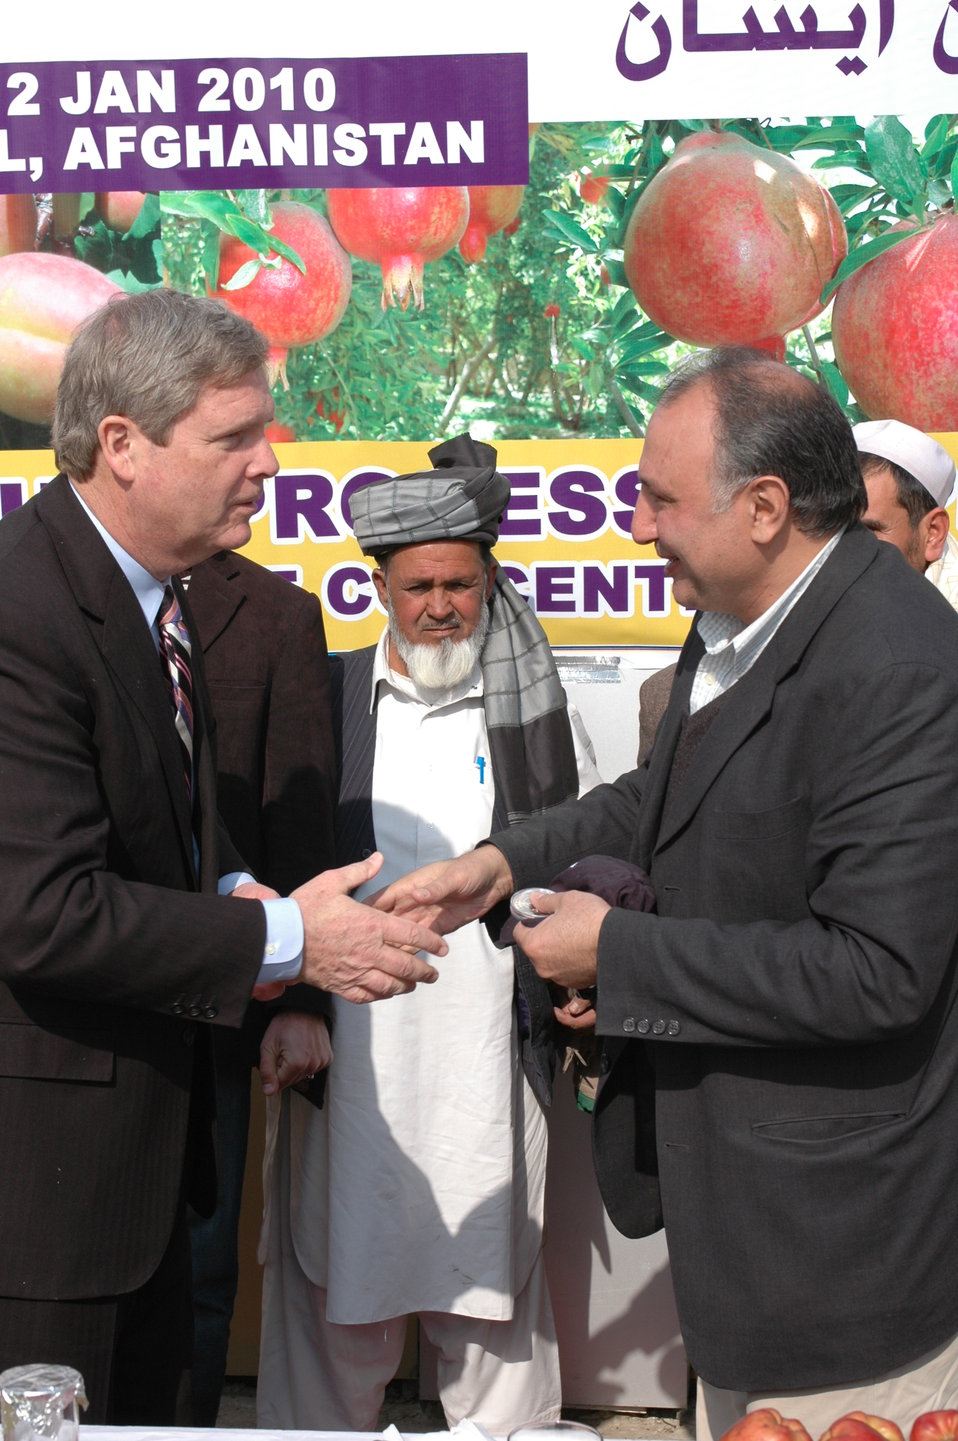 Secretary of Agriculture Vilsack